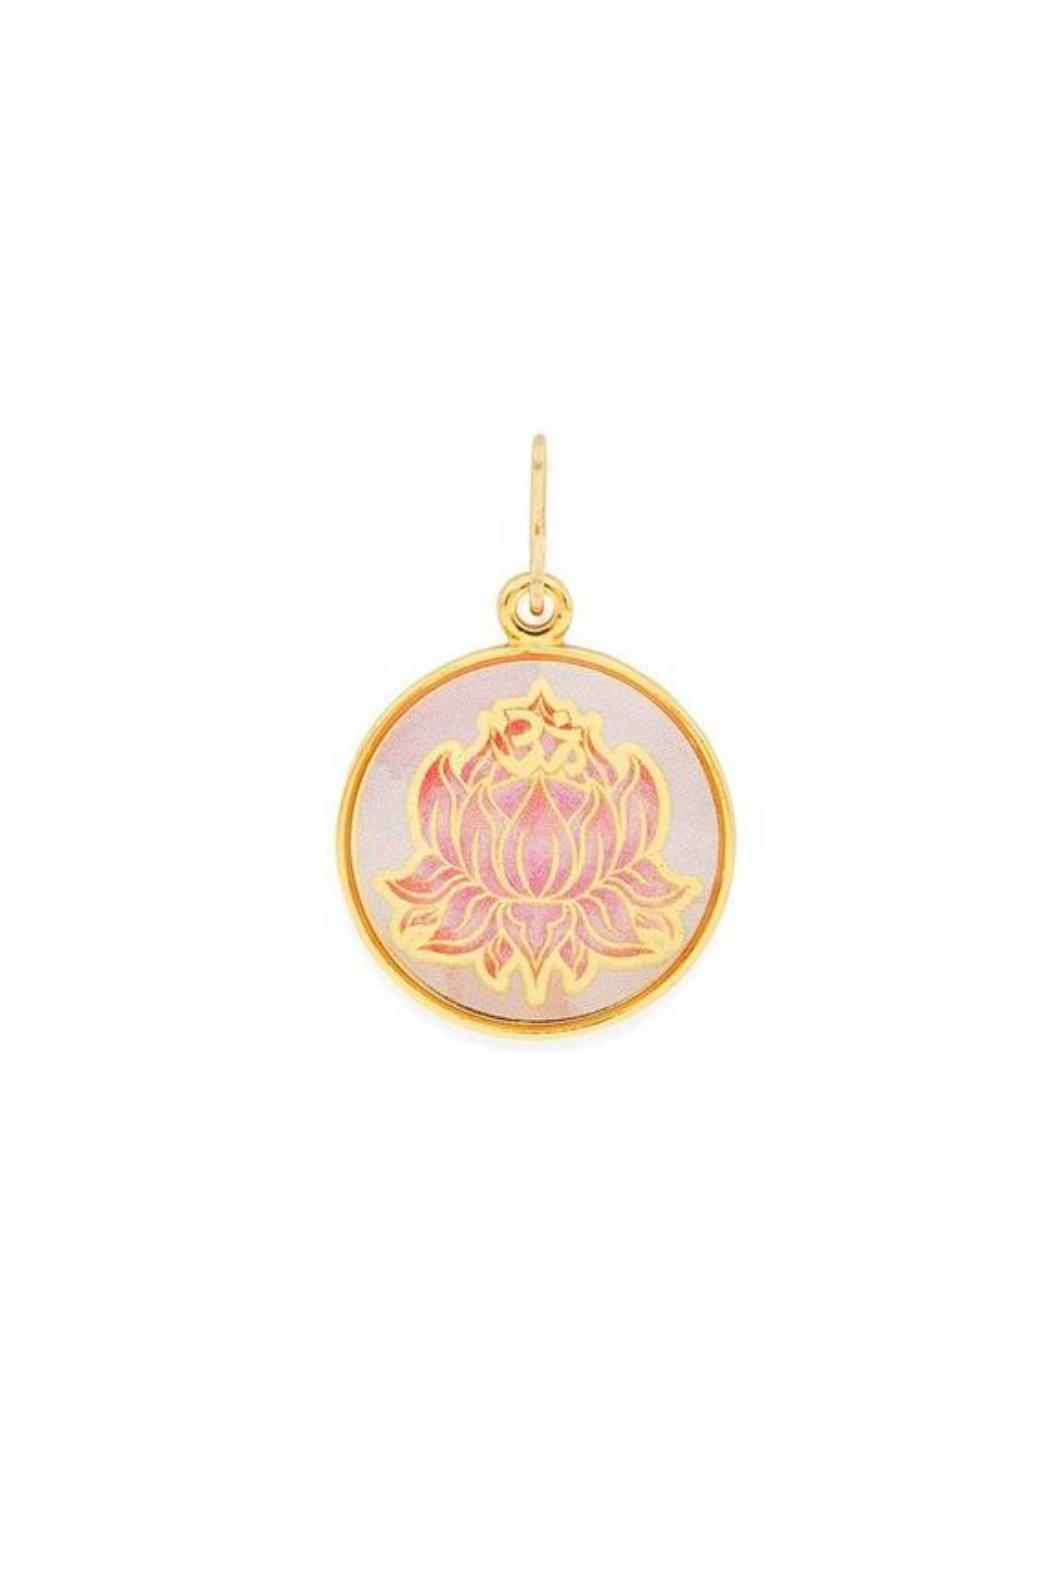 Alex and ani lotus flower necklace from connecticut by wave gallery alex and ani lotus flower necklace front cropped image izmirmasajfo